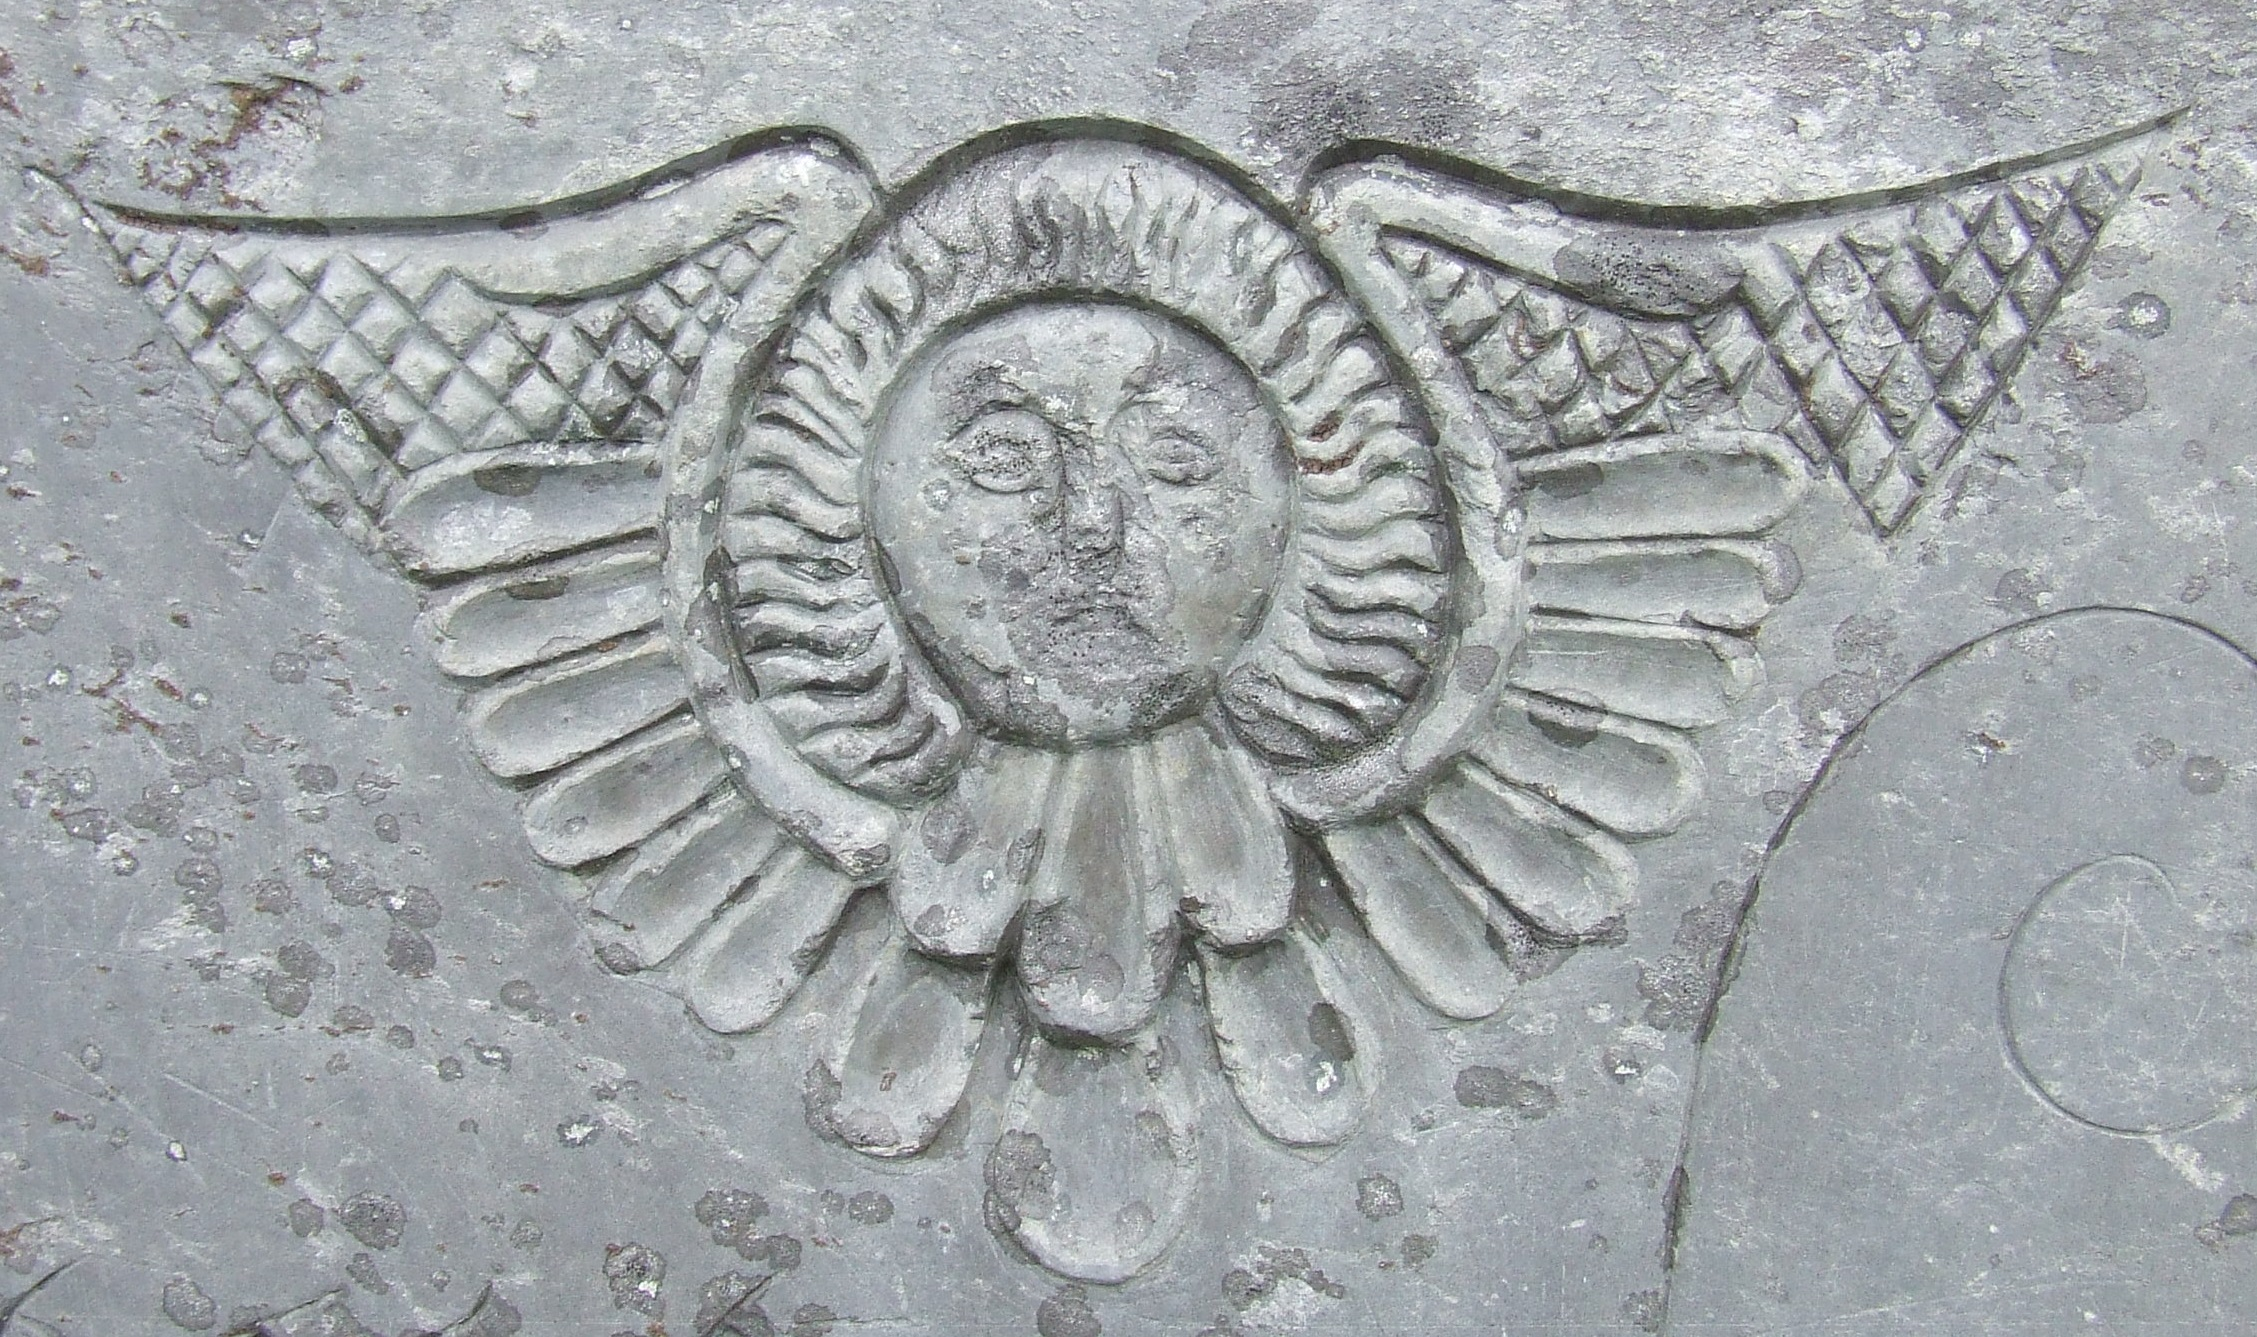 Carving of a cherub on a gravestone